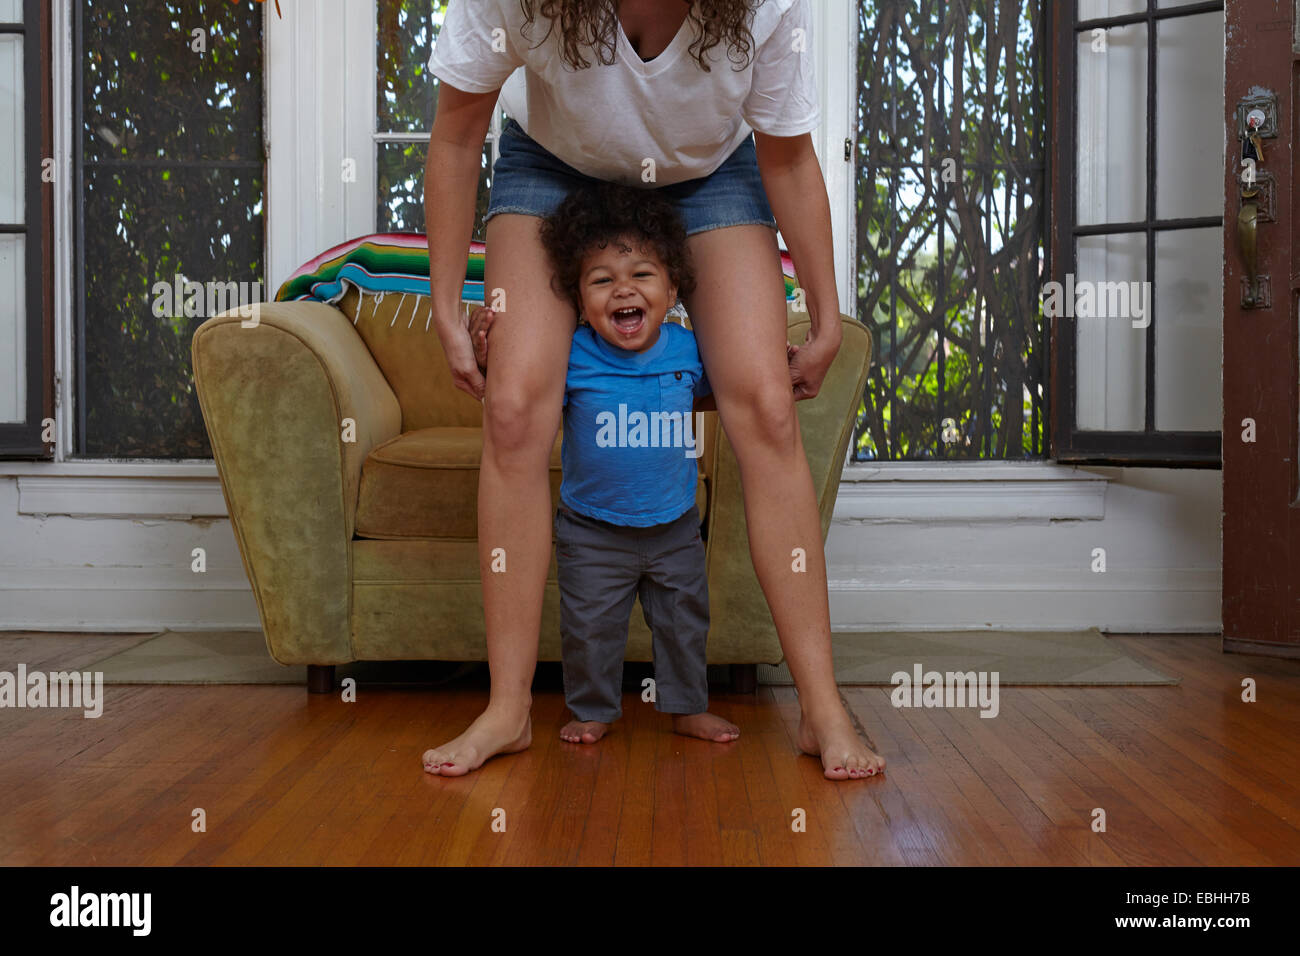 Male toddler taking first steps with mother in sitting room - Stock Image